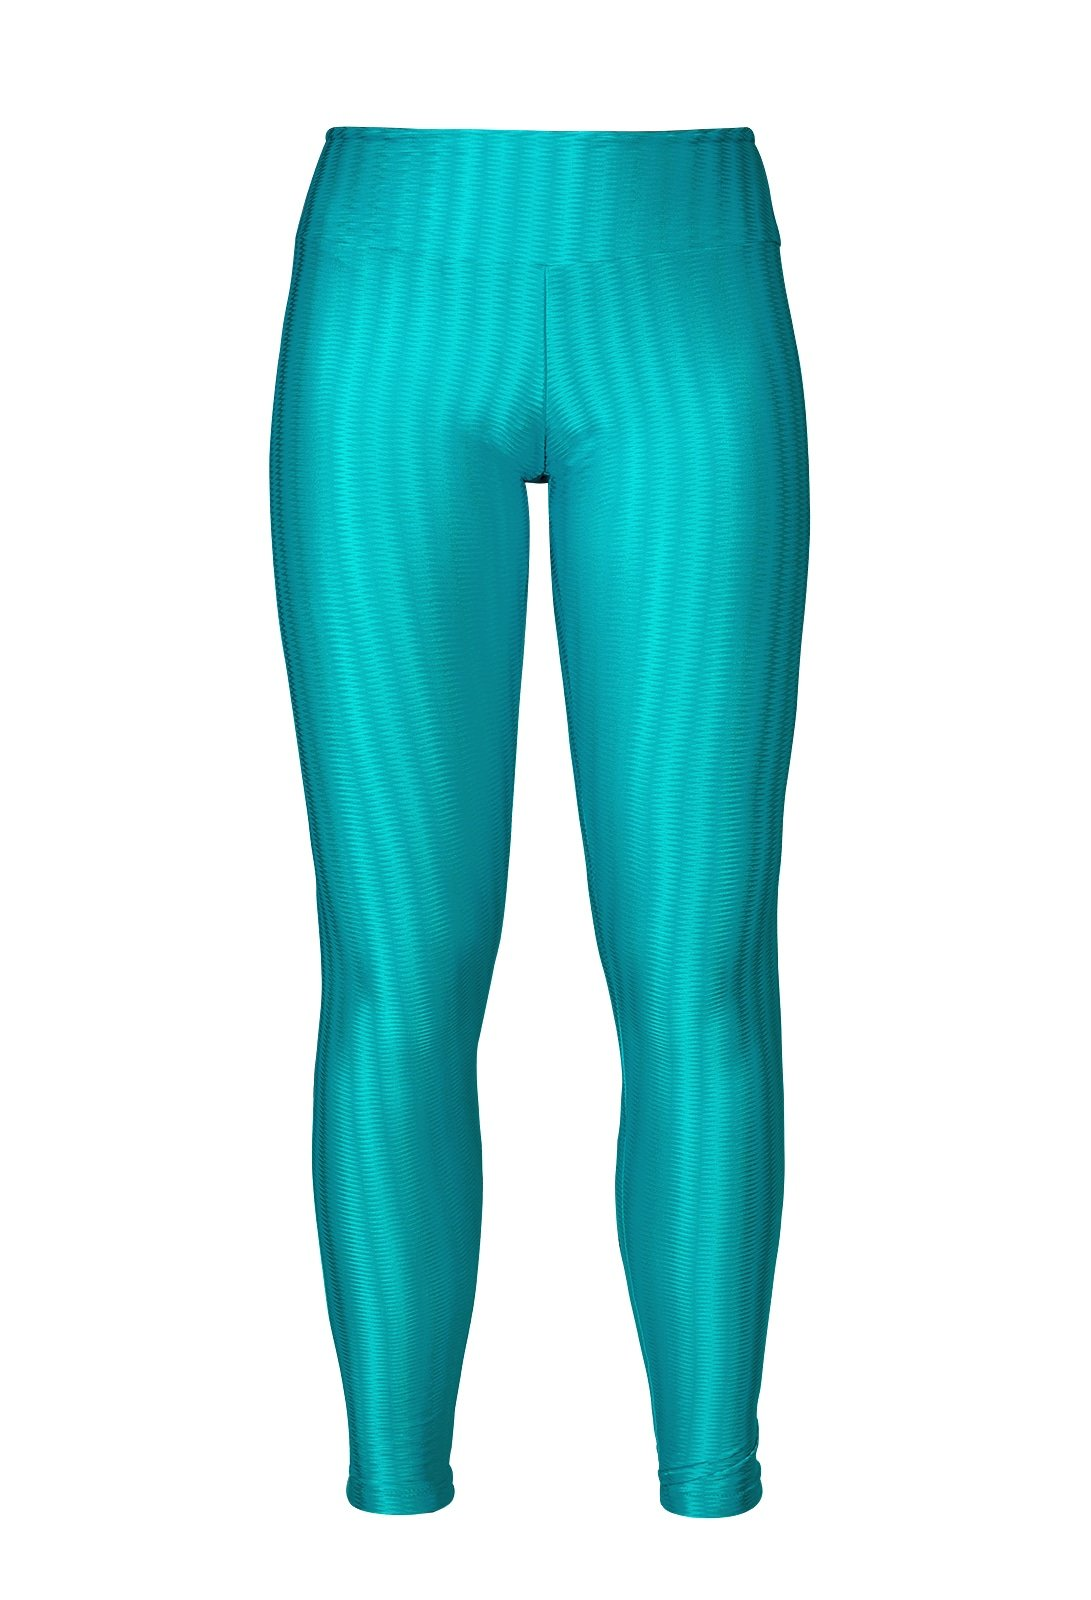 liveblog.ga: blue metallic leggings. From The Community. Abyelike Womens Sexy Shiny Faux Leather Leggings Wet Look Metallic Waist Legging Pants Trousers. by Abyelike. $ - $ $ 11 $ 12 99 Prime. FREE Shipping on eligible orders. Some sizes/colors are Prime eligible. out of .